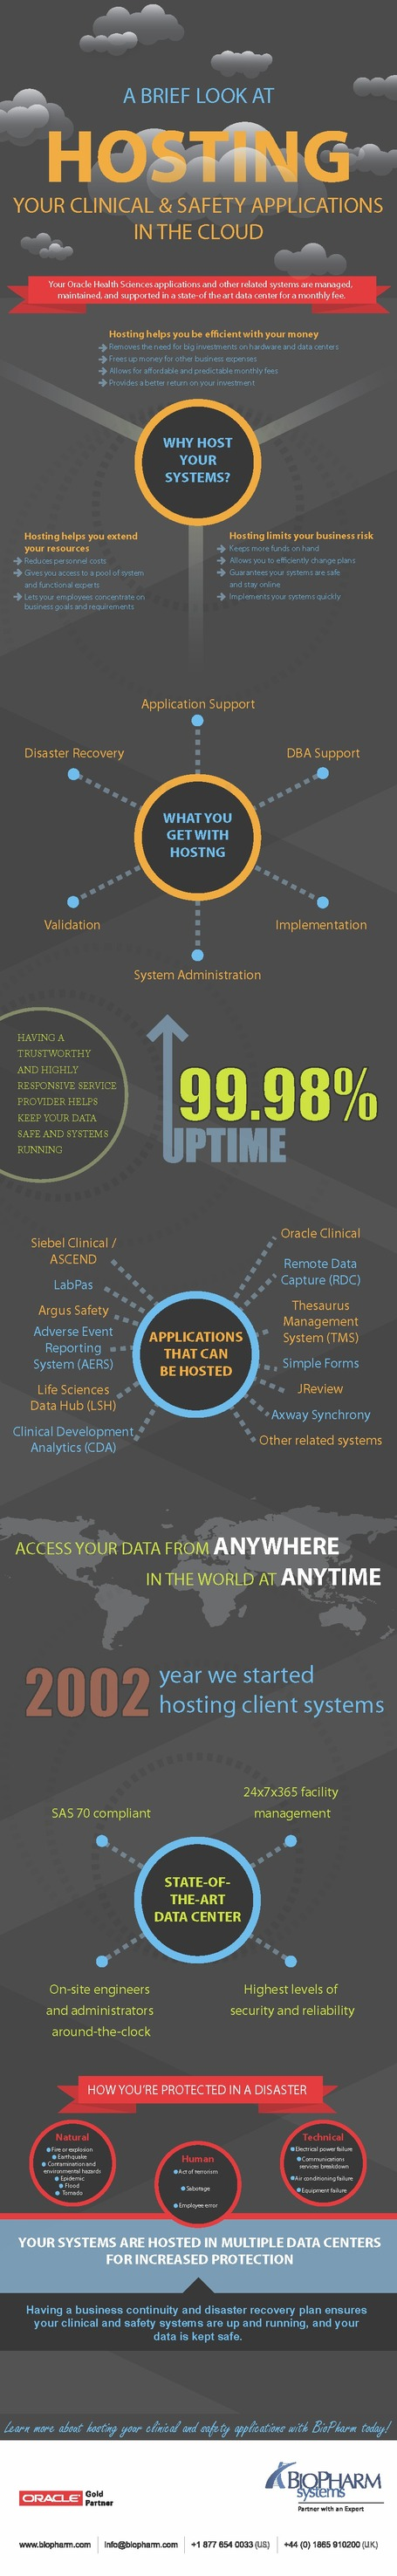 INFOGRAPHIC: Hosting Your Clinical Applications | Cloud Central | Scoop.it